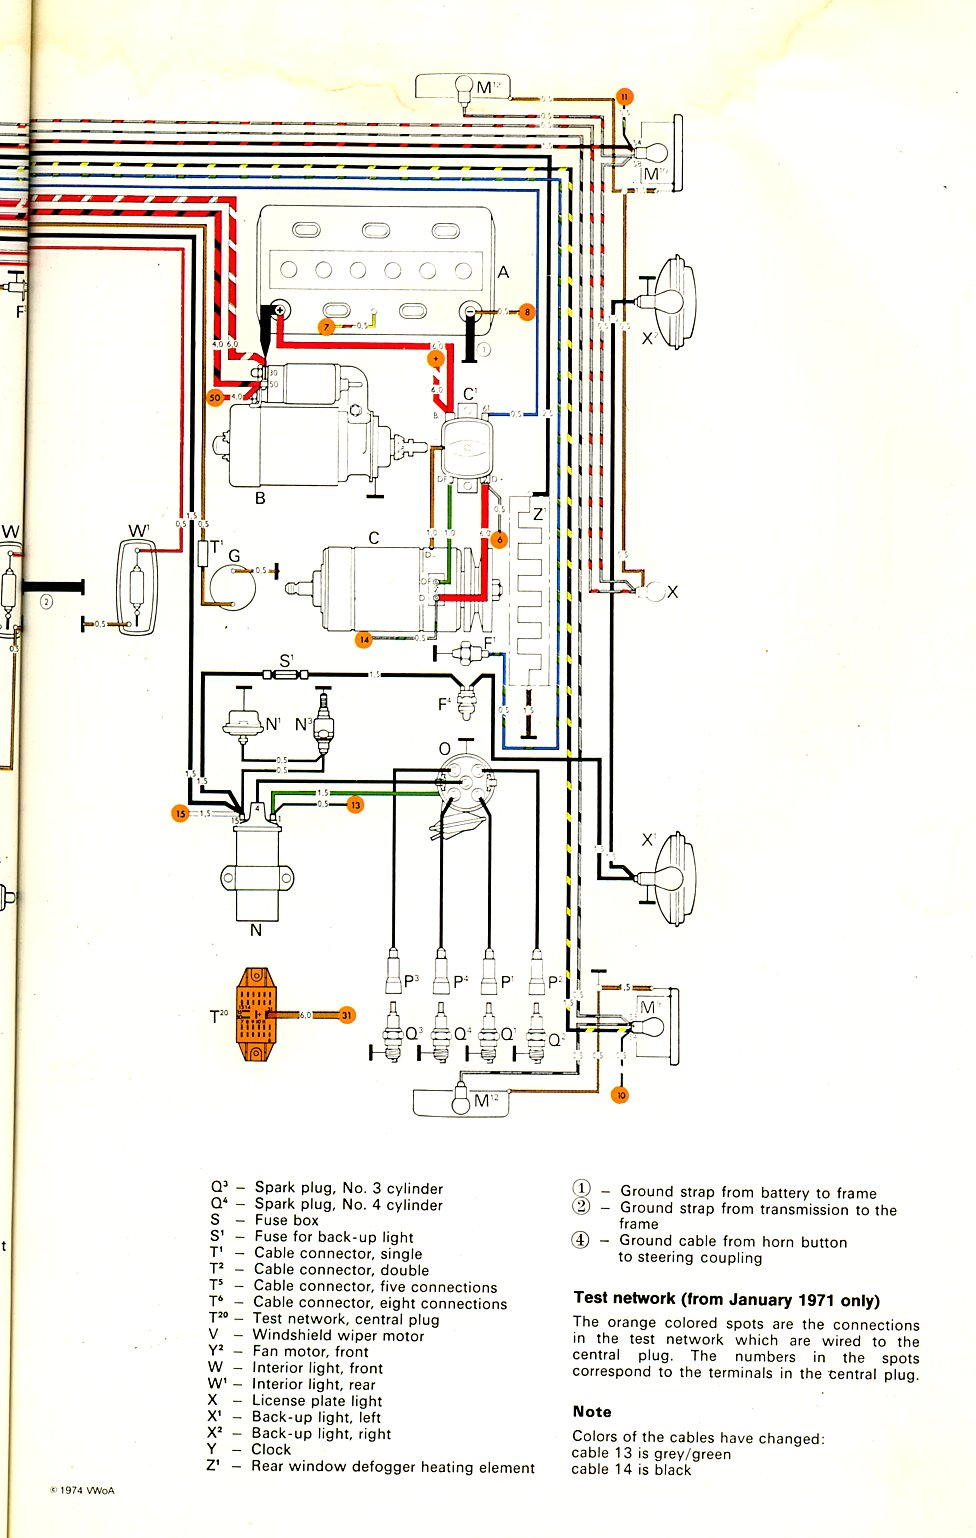 baybus_71b 1971 bus wiring diagram thegoldenbug com bus wiring diagrams at eliteediting.co